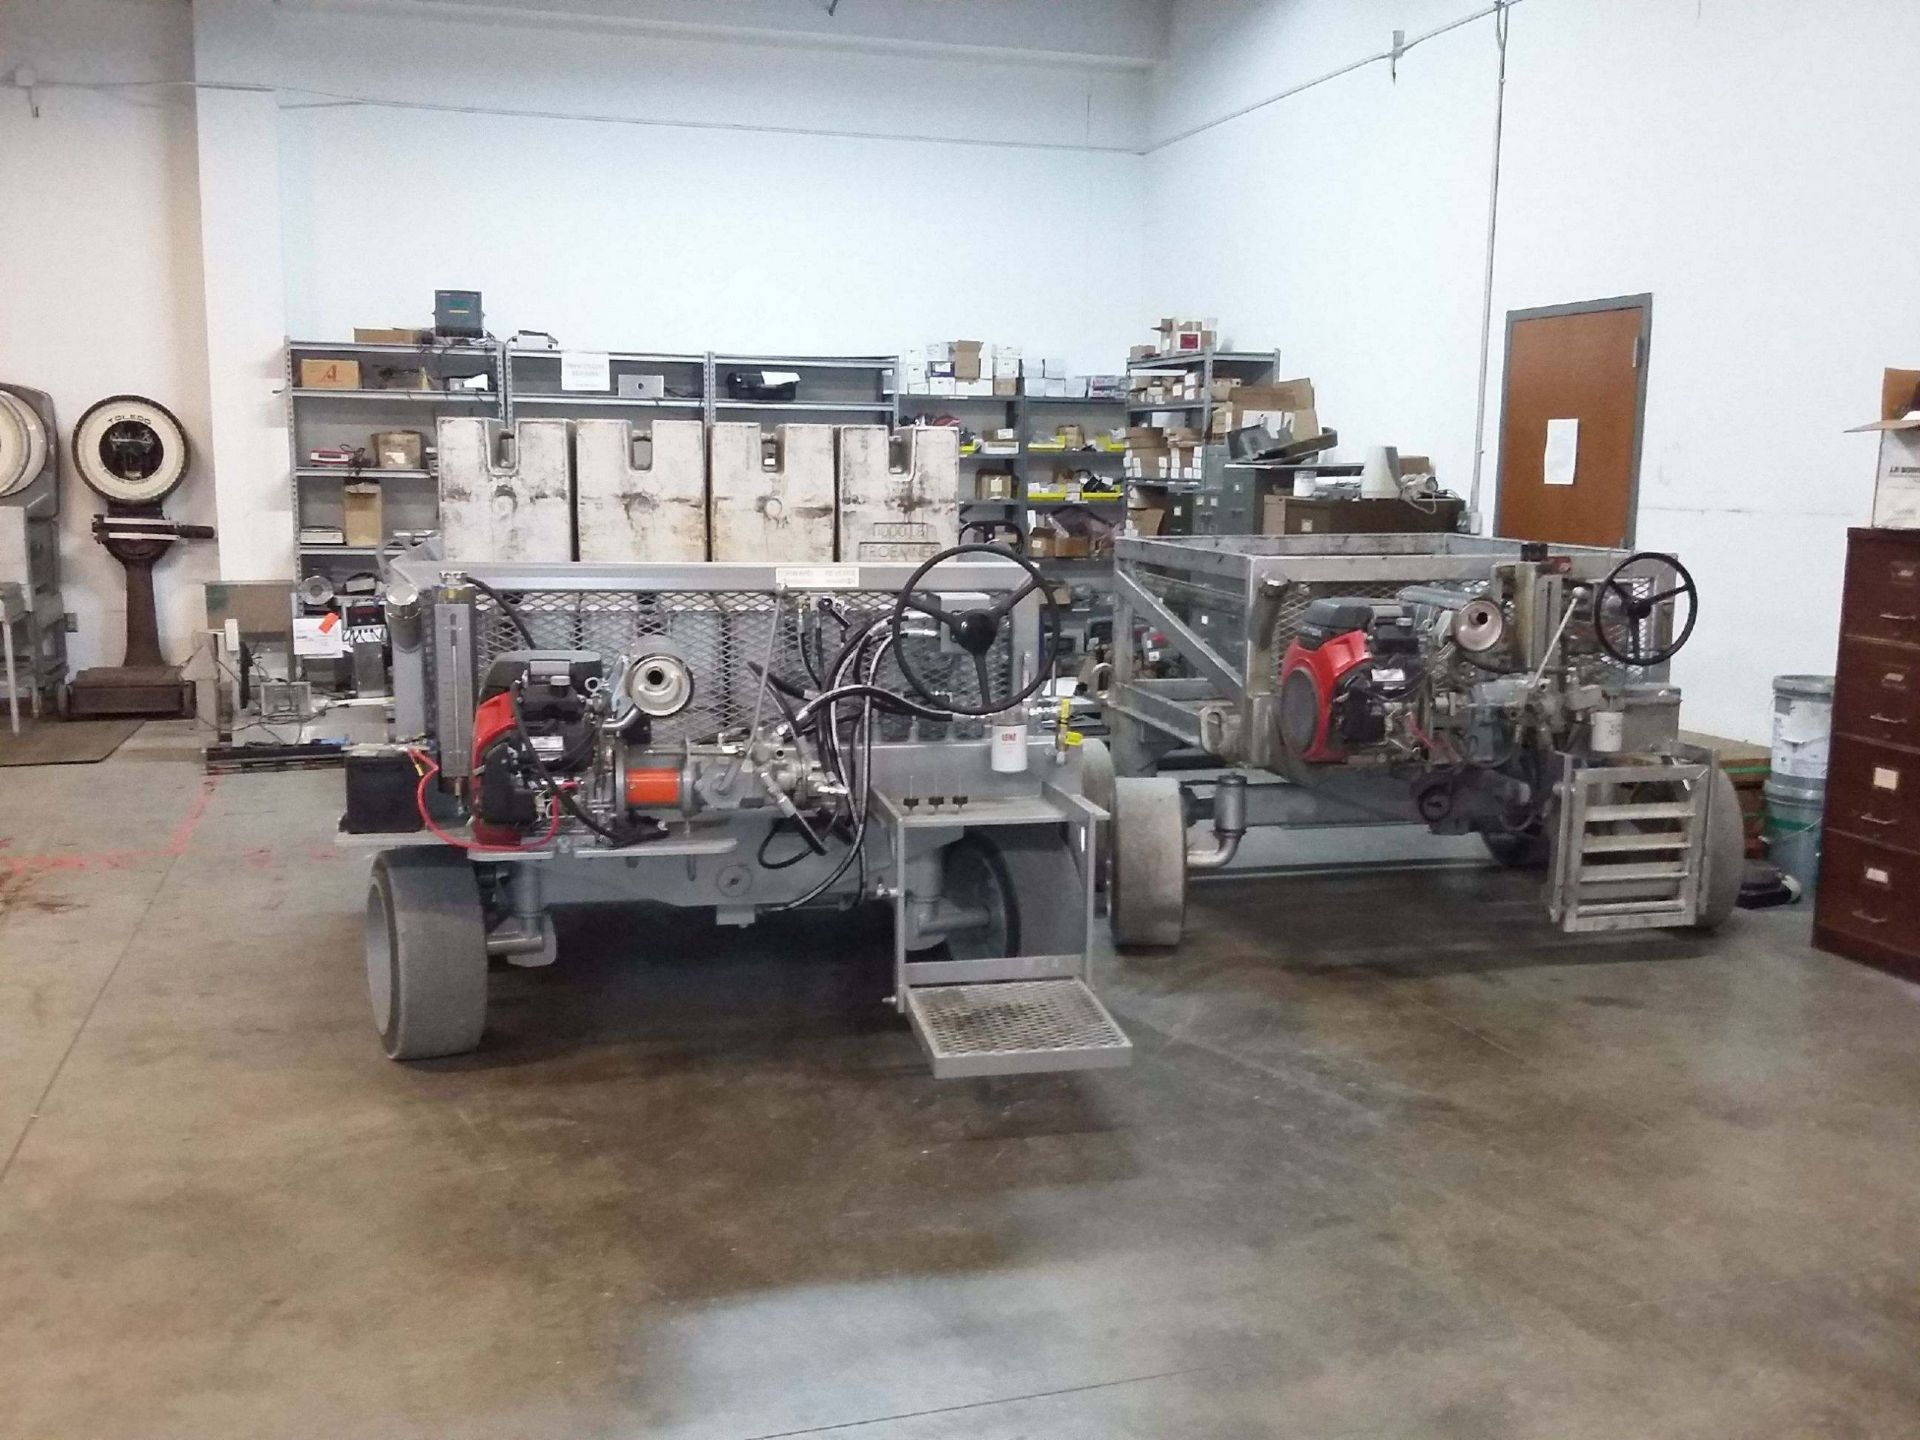 Two test carts in shop